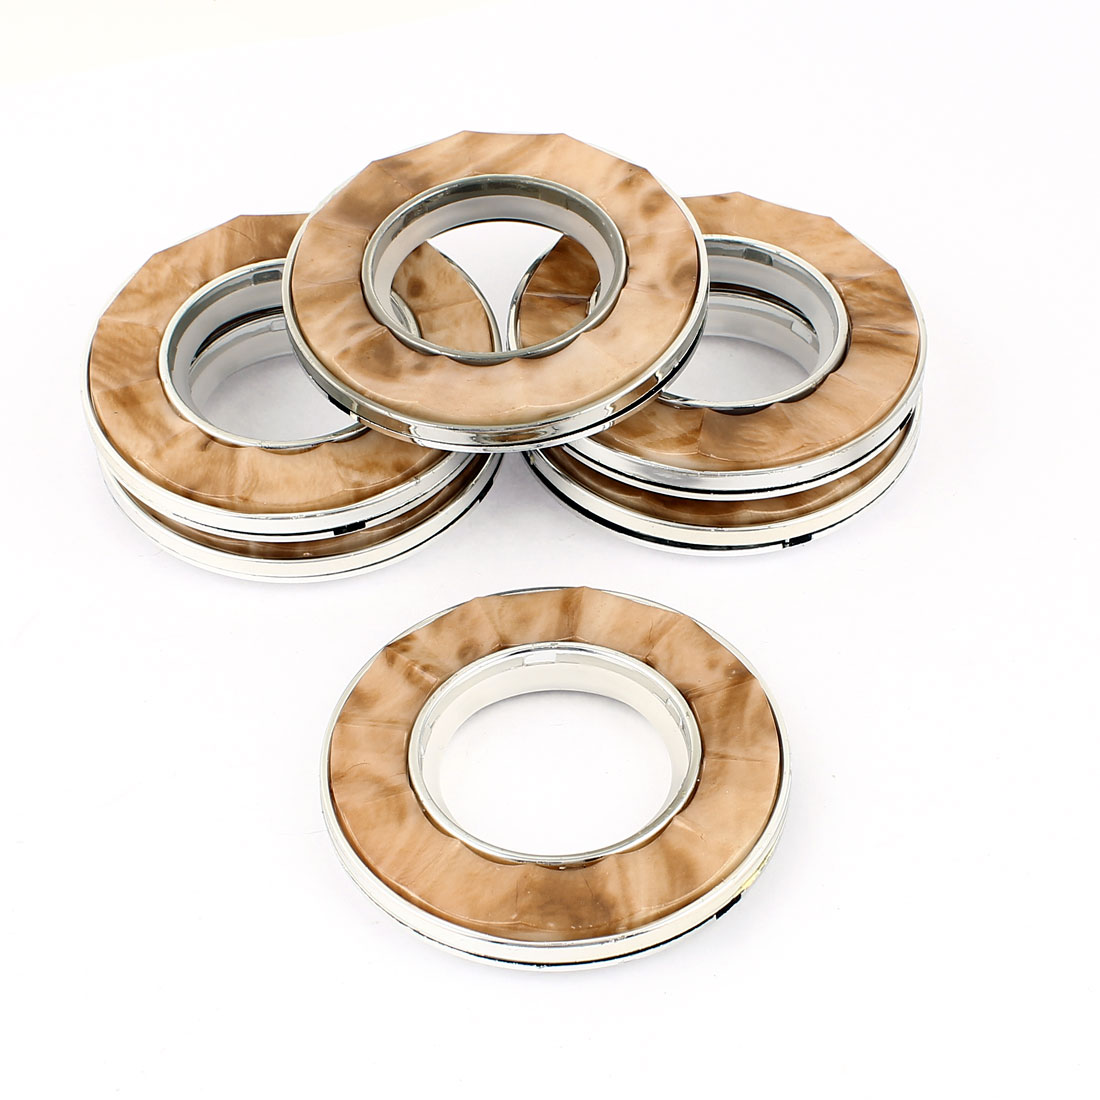 6 Pcs 40mm Inner Dia Round Plastic Ring for Eyelet Curtain Drapery